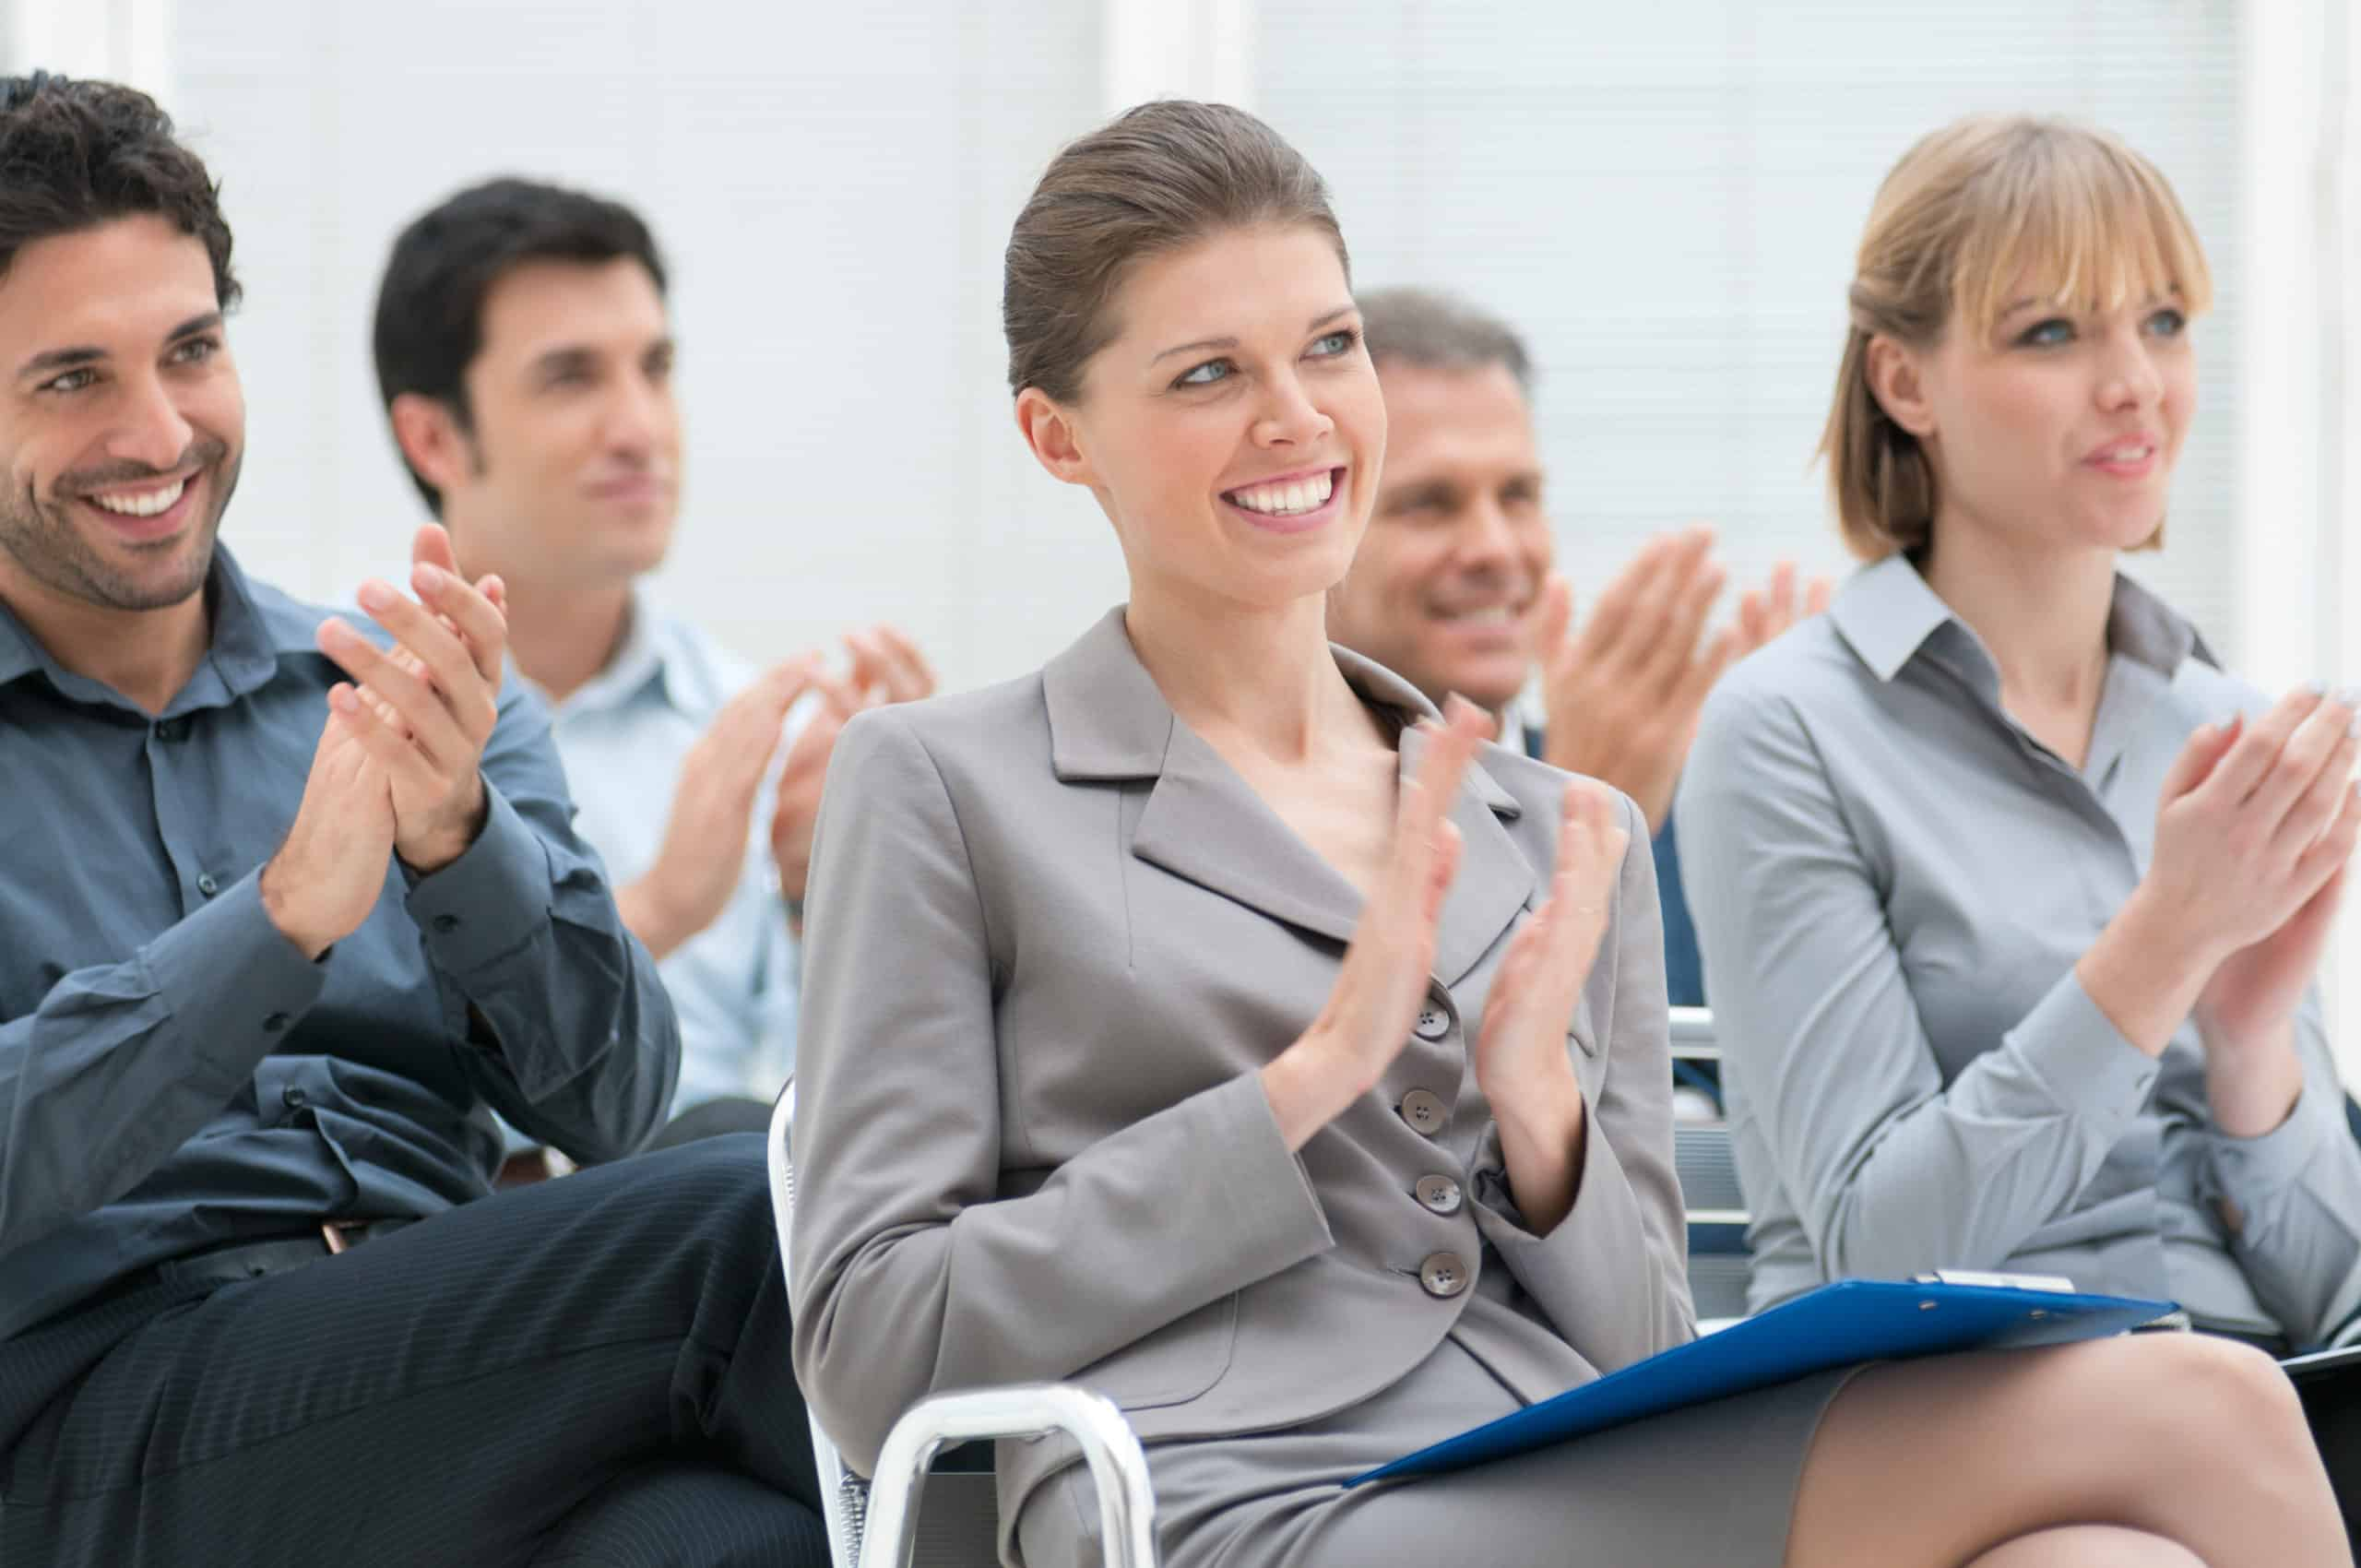 4 PowerPoints to Inspire Your Next Presentation